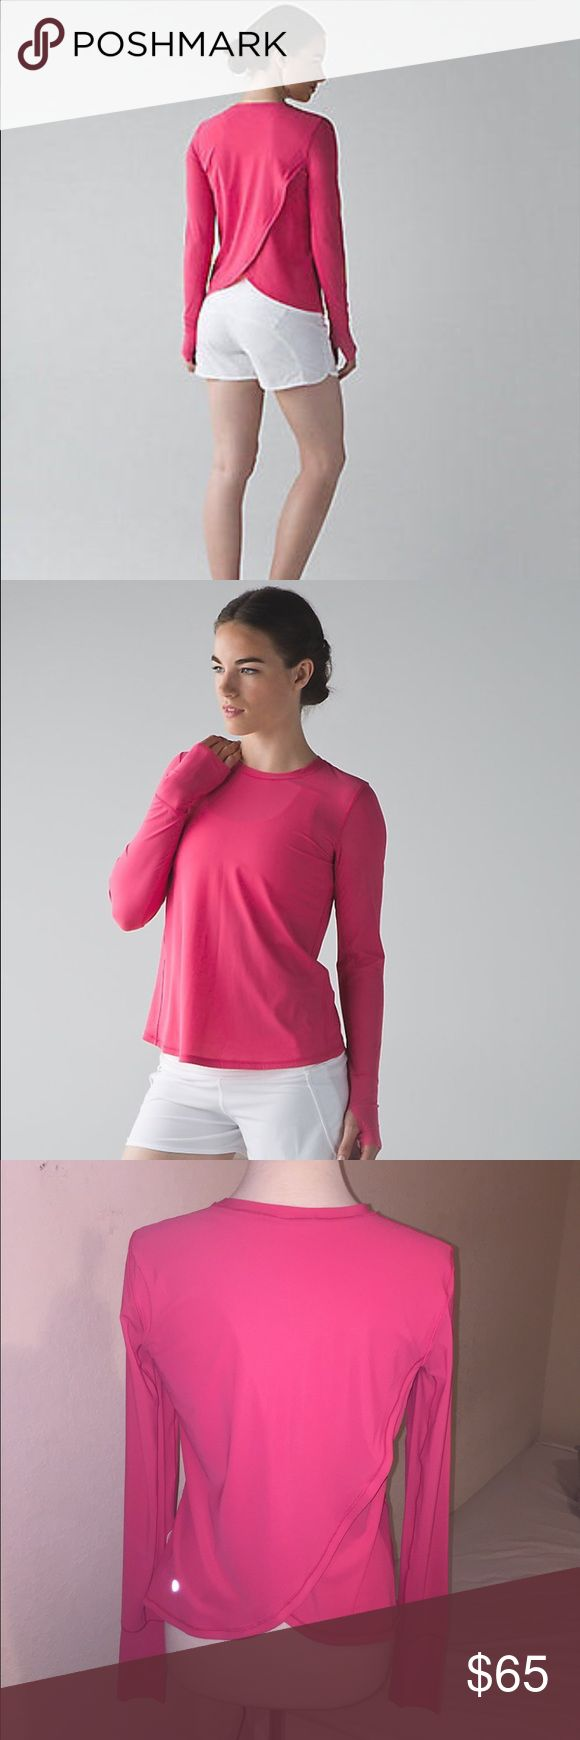 Lululemon Sunaway Runaway Long Sleeve NWT Sz 8 NWT, size 8, boom juice color. Lovely long sleeve. On sale online for $69, buy it here and save! Cheaper through PayPal or mercari lululemon athletica Tops Tees - Long Sleeve